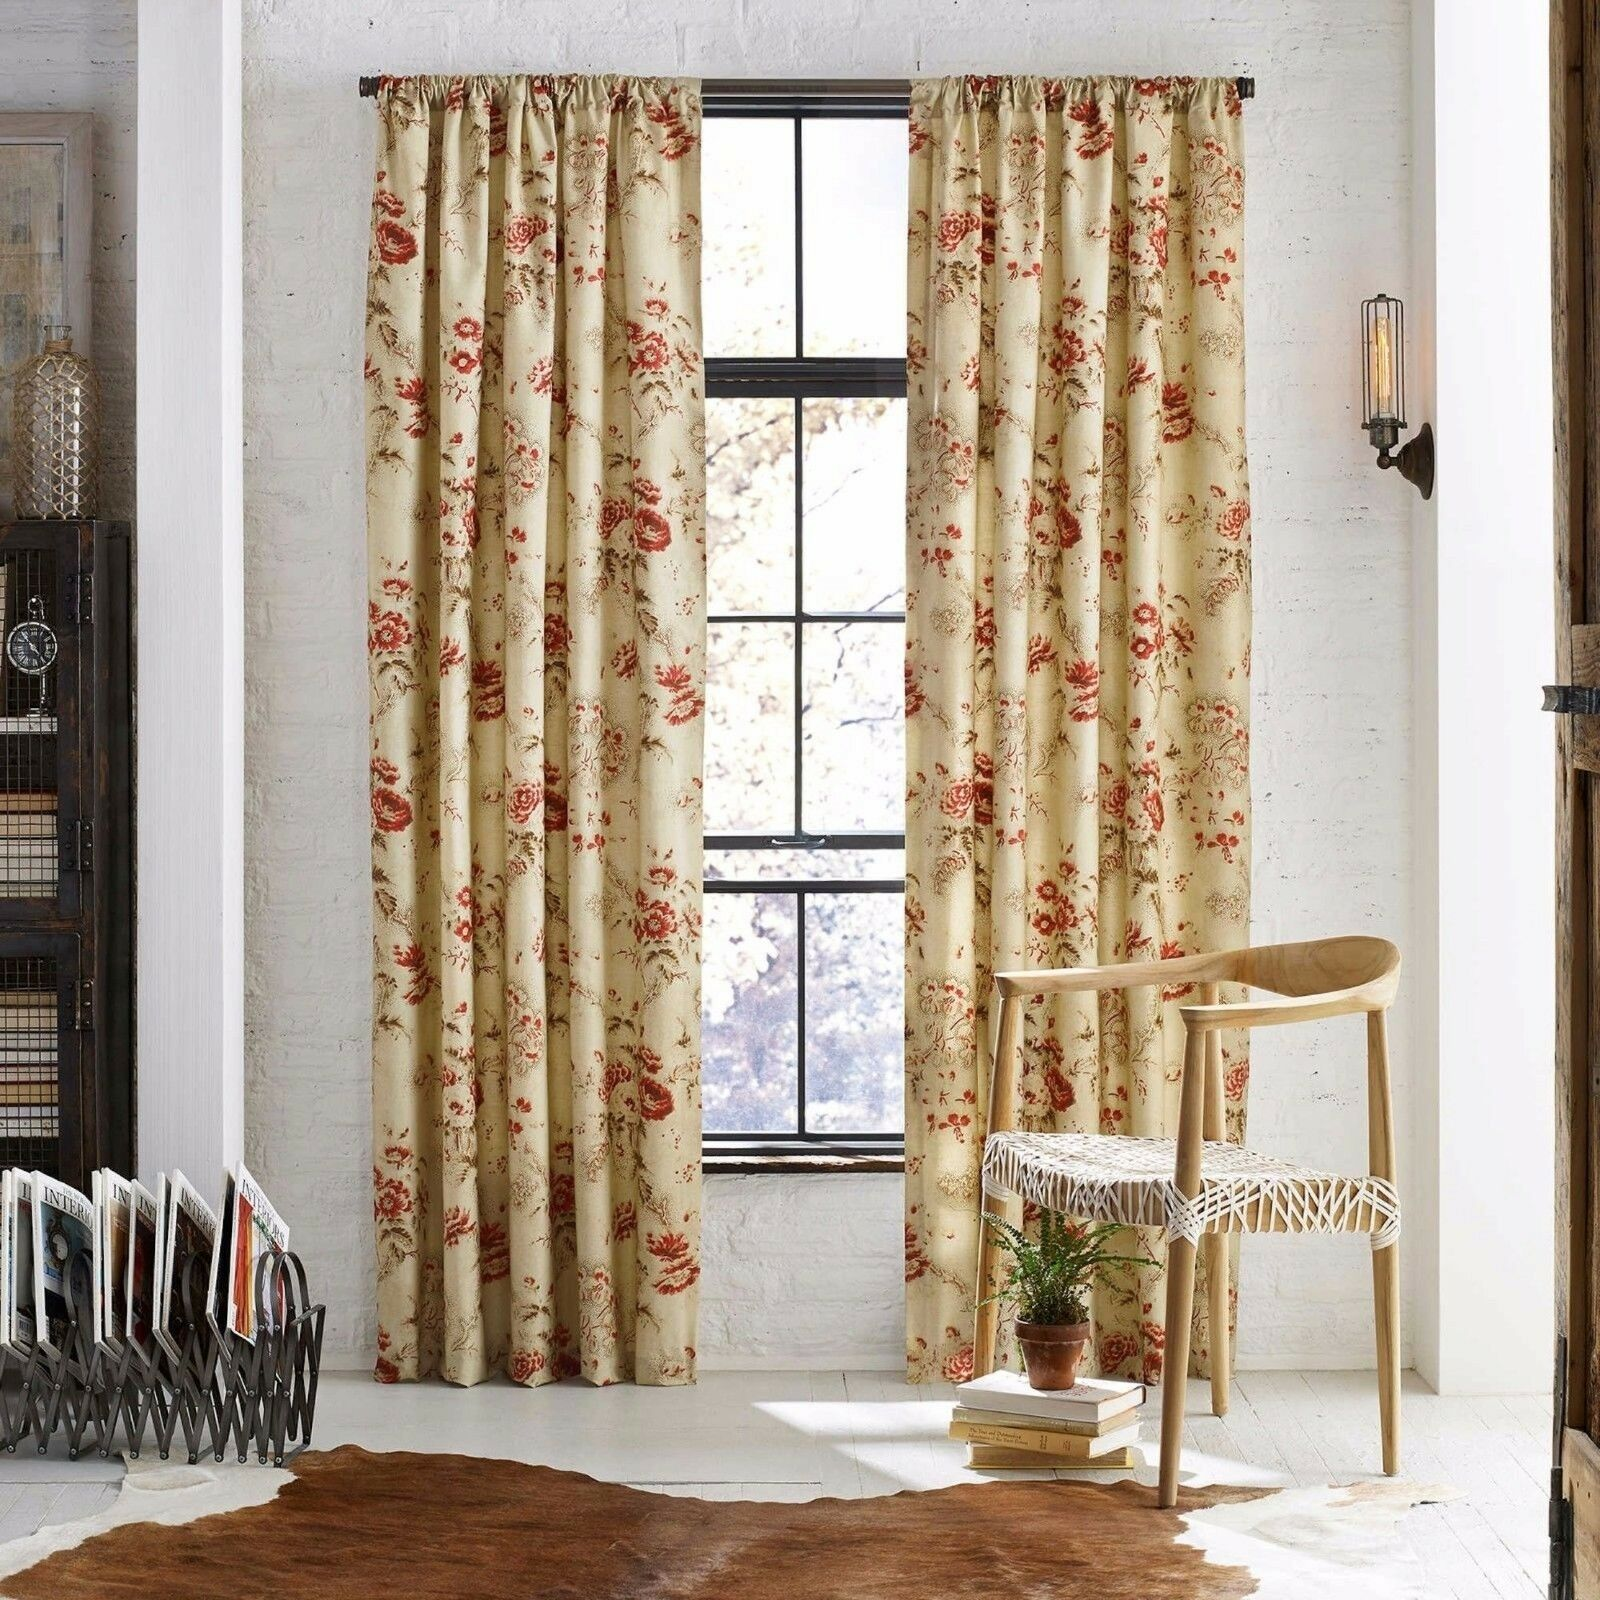 snow drapes panels voile door p expand semi click panel reverie to sheer